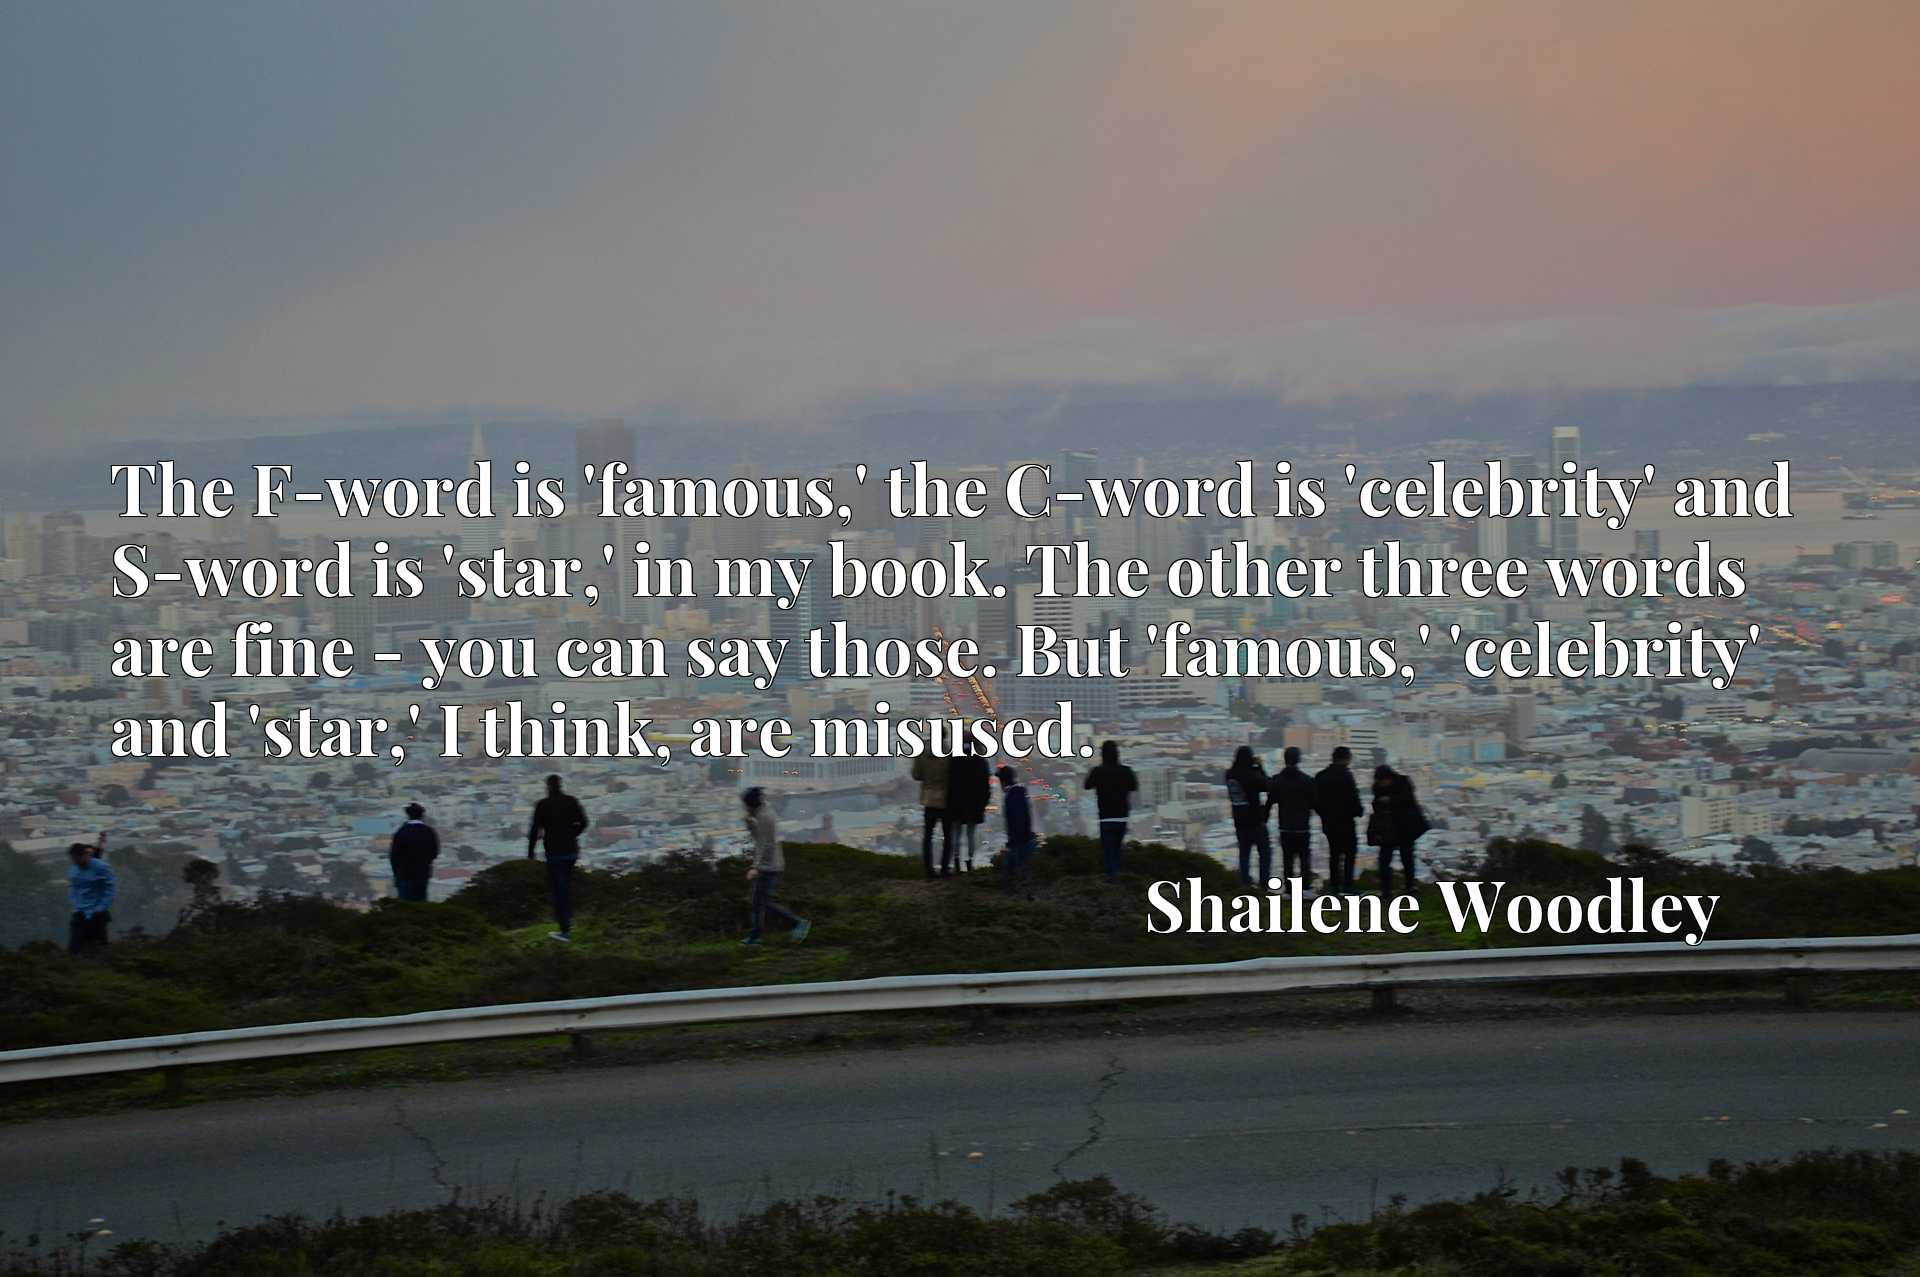 The F-word is 'famous,' the C-word is 'celebrity' and S-word is 'star,' in my book. The other three words are fine - you can say those. But 'famous,' 'celebrity' and 'star,' I think, are misused.